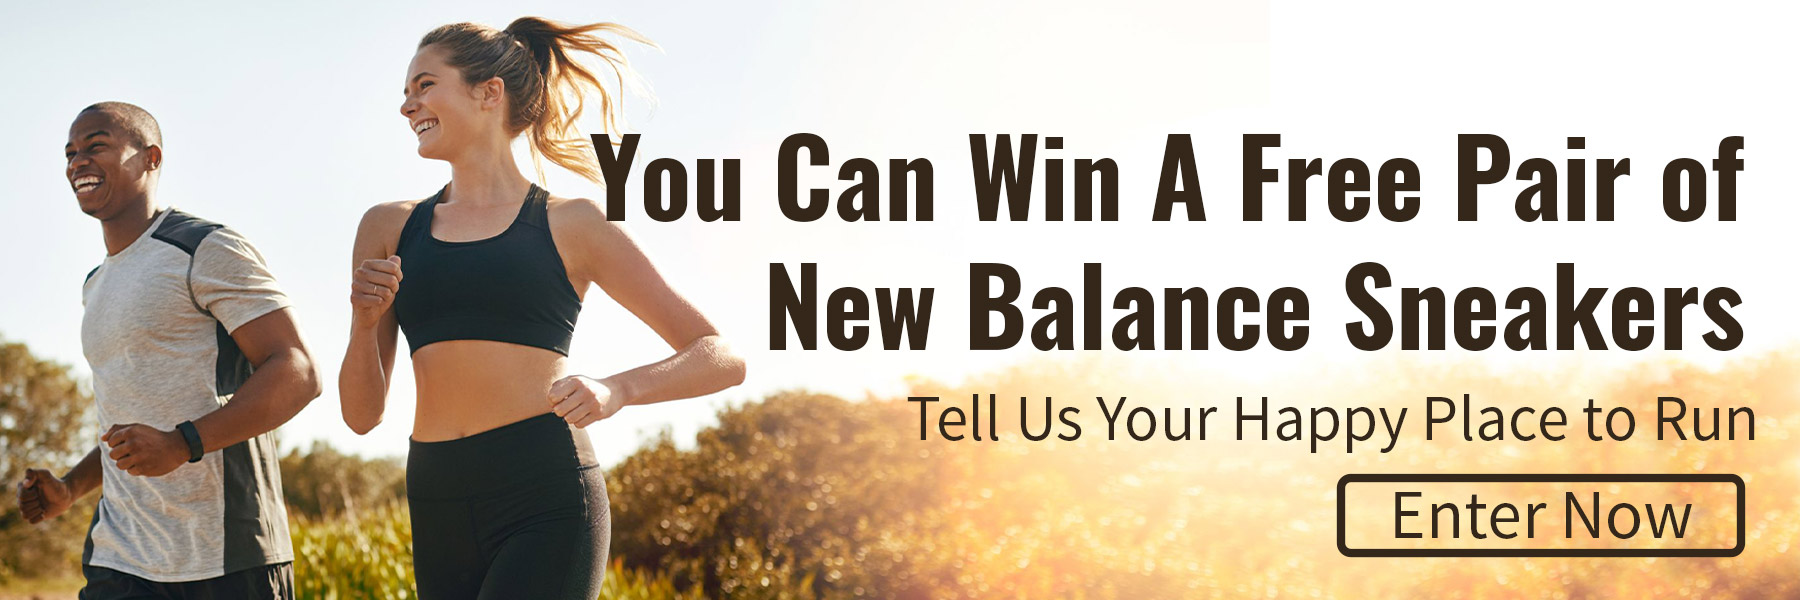 Hawley Lane Shoes, CT New Balance Sneaker Giveaway Contest